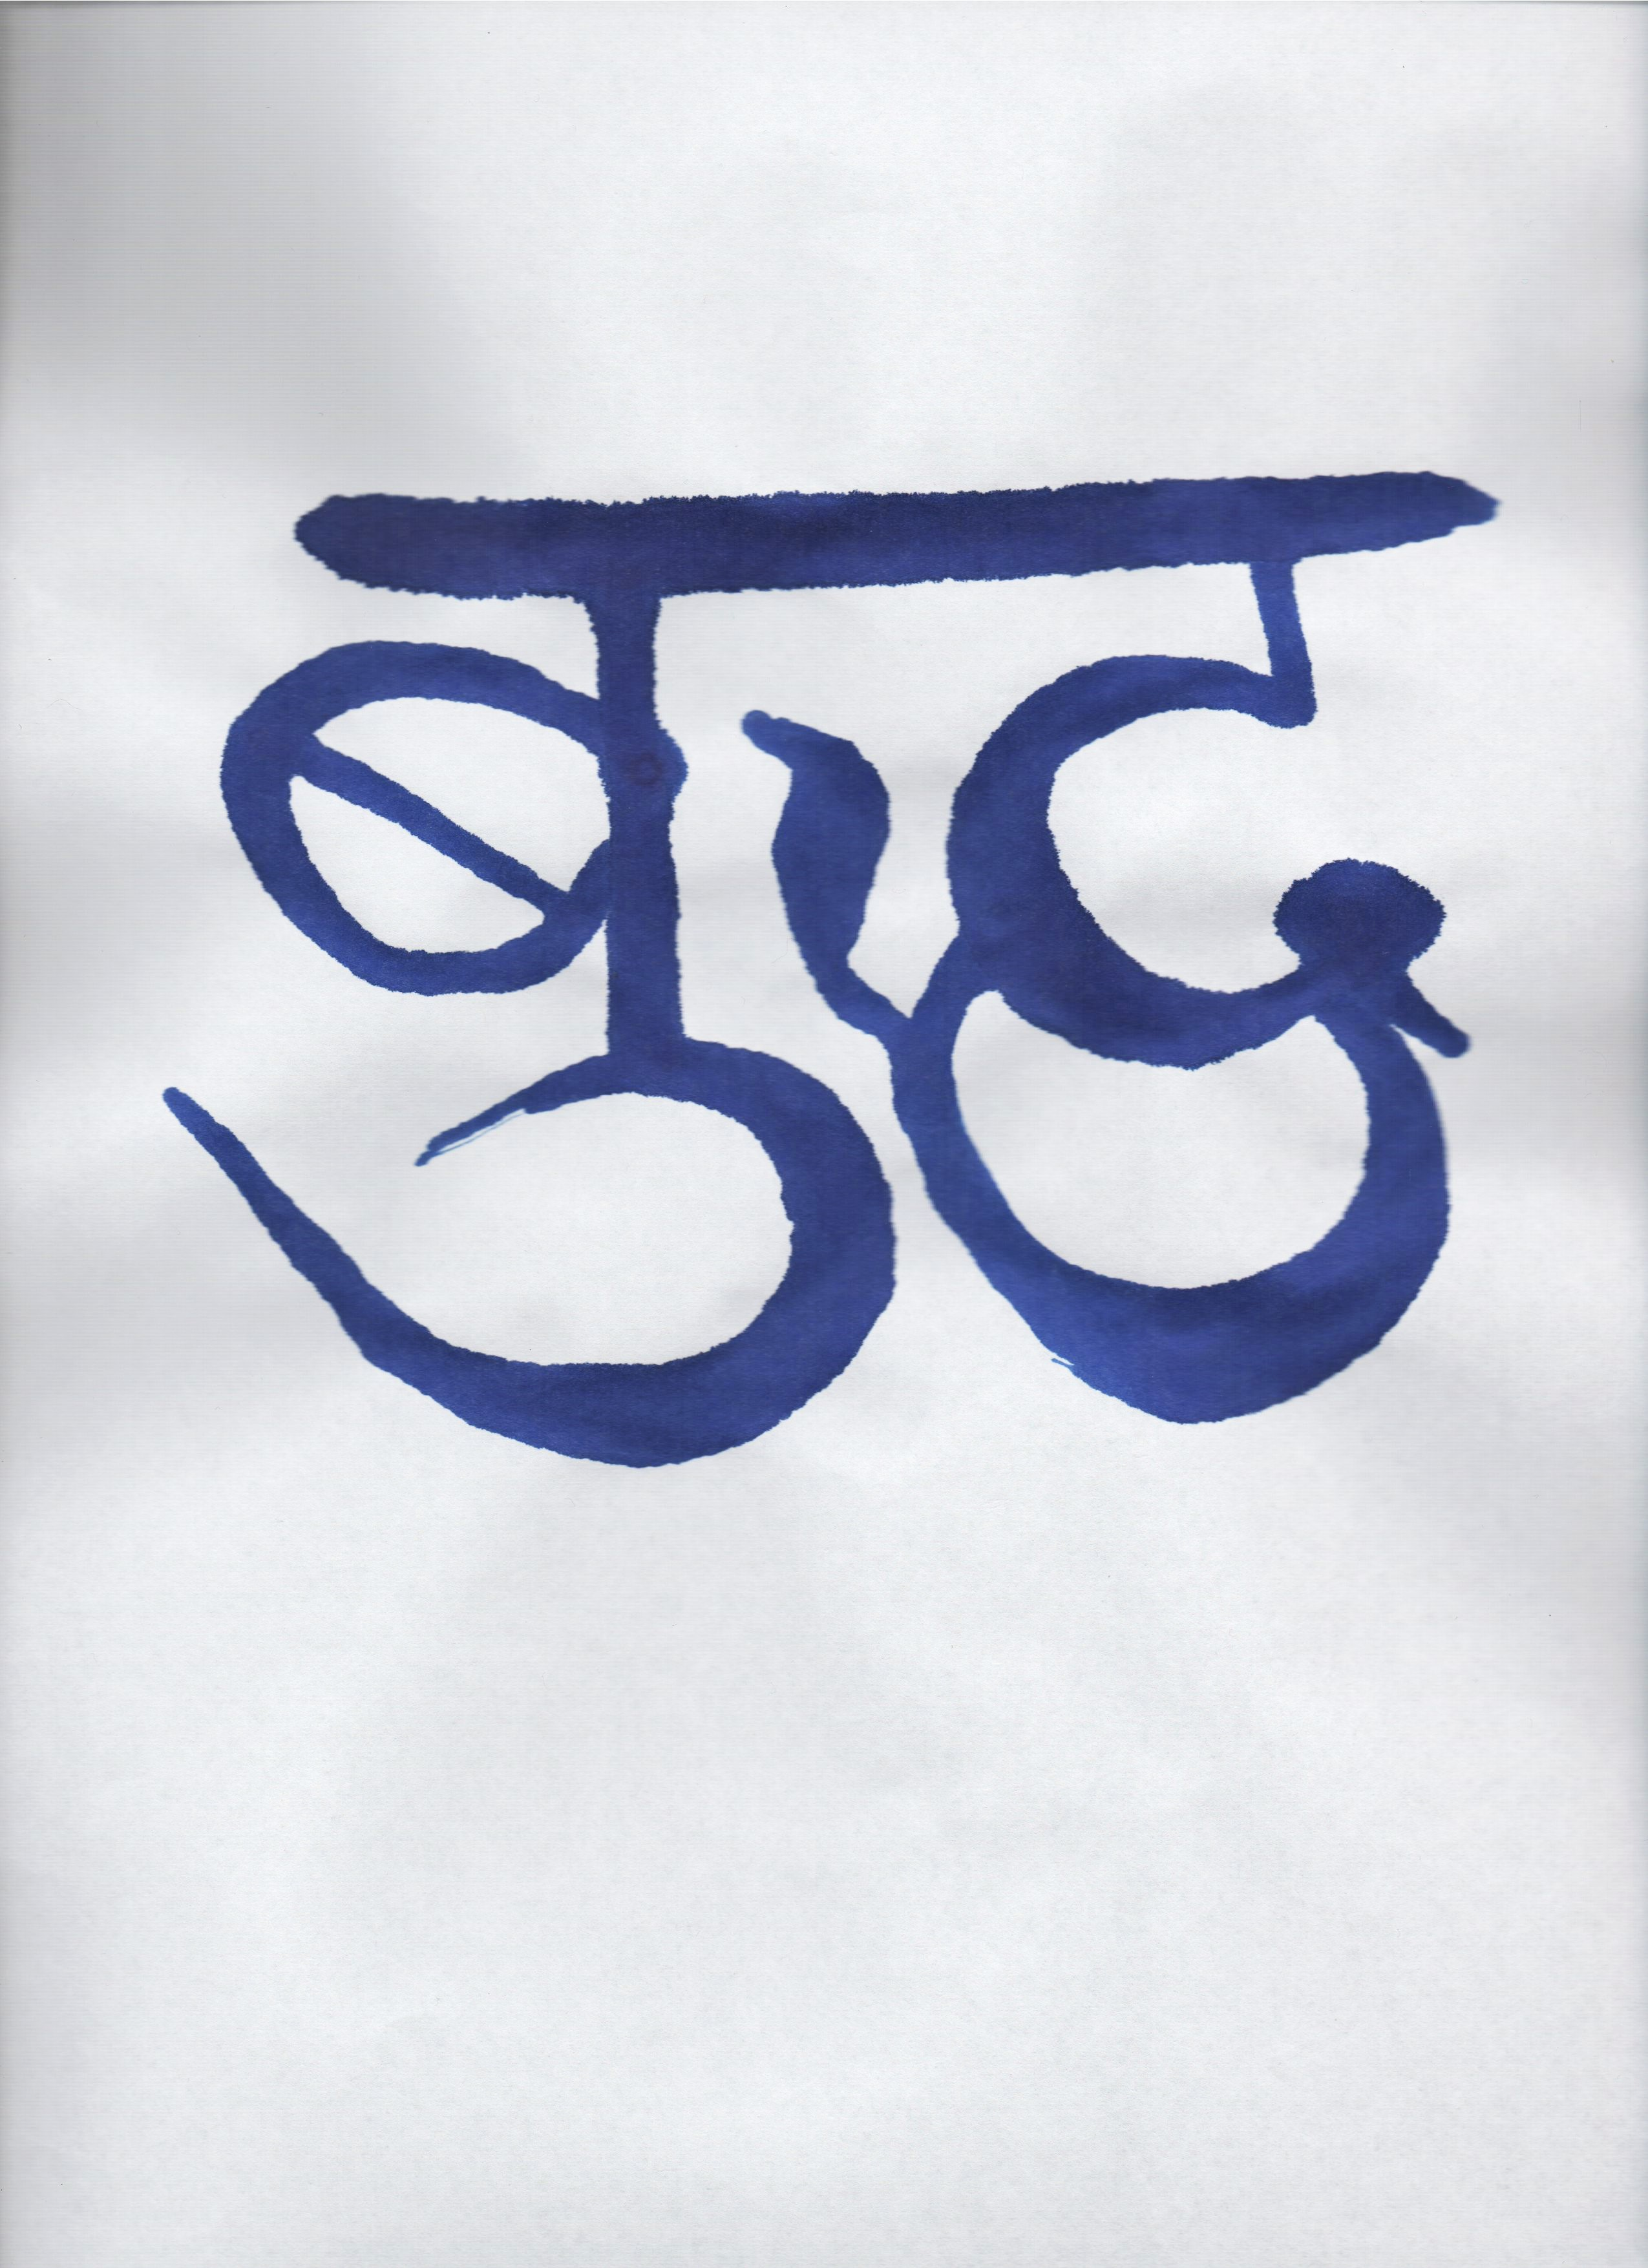 Buddha sanskrit calligraphy azul bluedragon buddha the enlightened one buddha encourages you to find peace of mind become one with the universe and find nirvana biocorpaavc Images